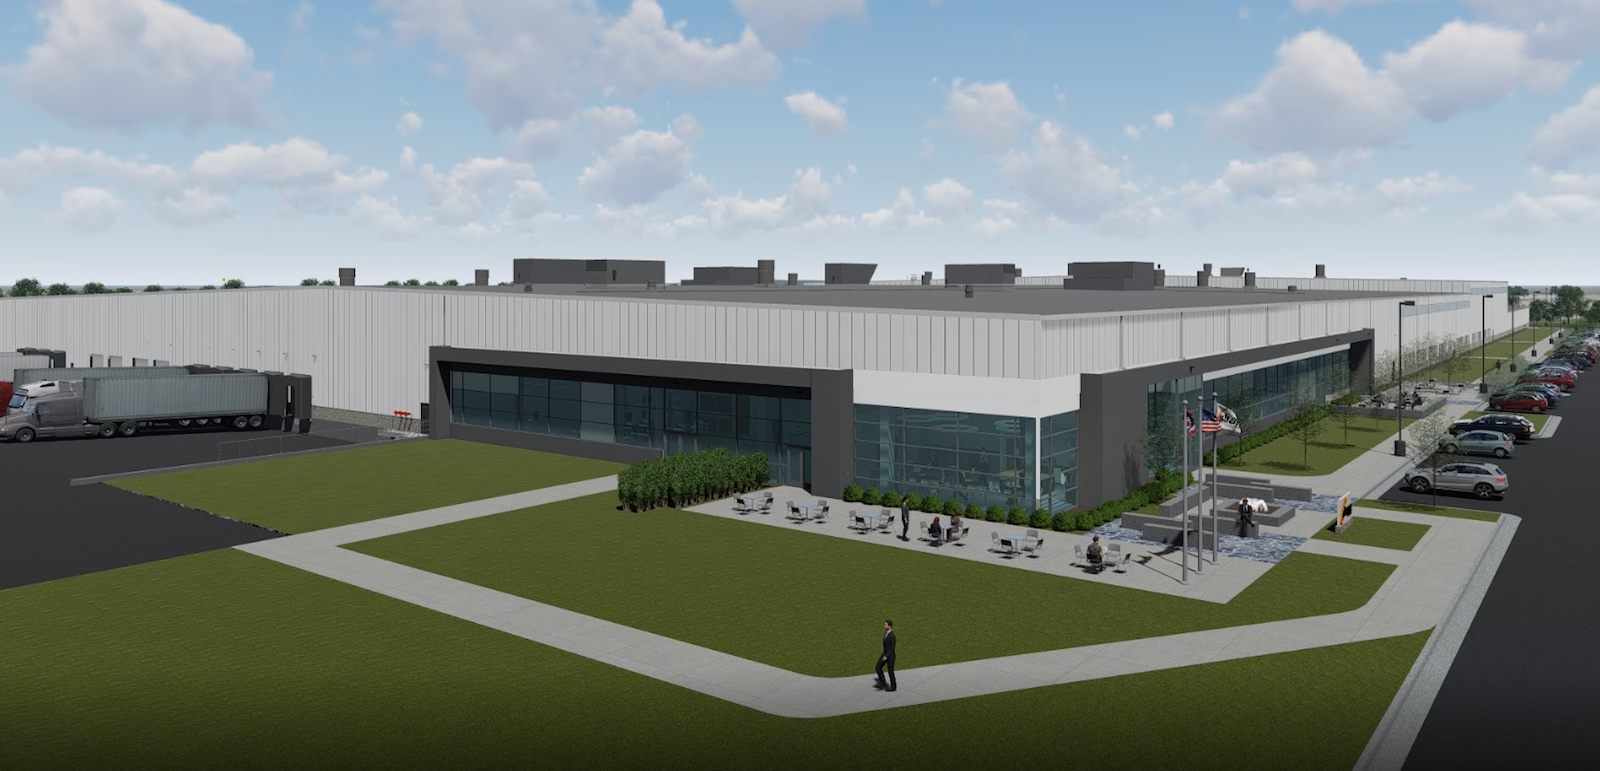 Figure 2. Digital rendering of the planned new Aluminum Center of Excellence, which will include manufacturing and office space.